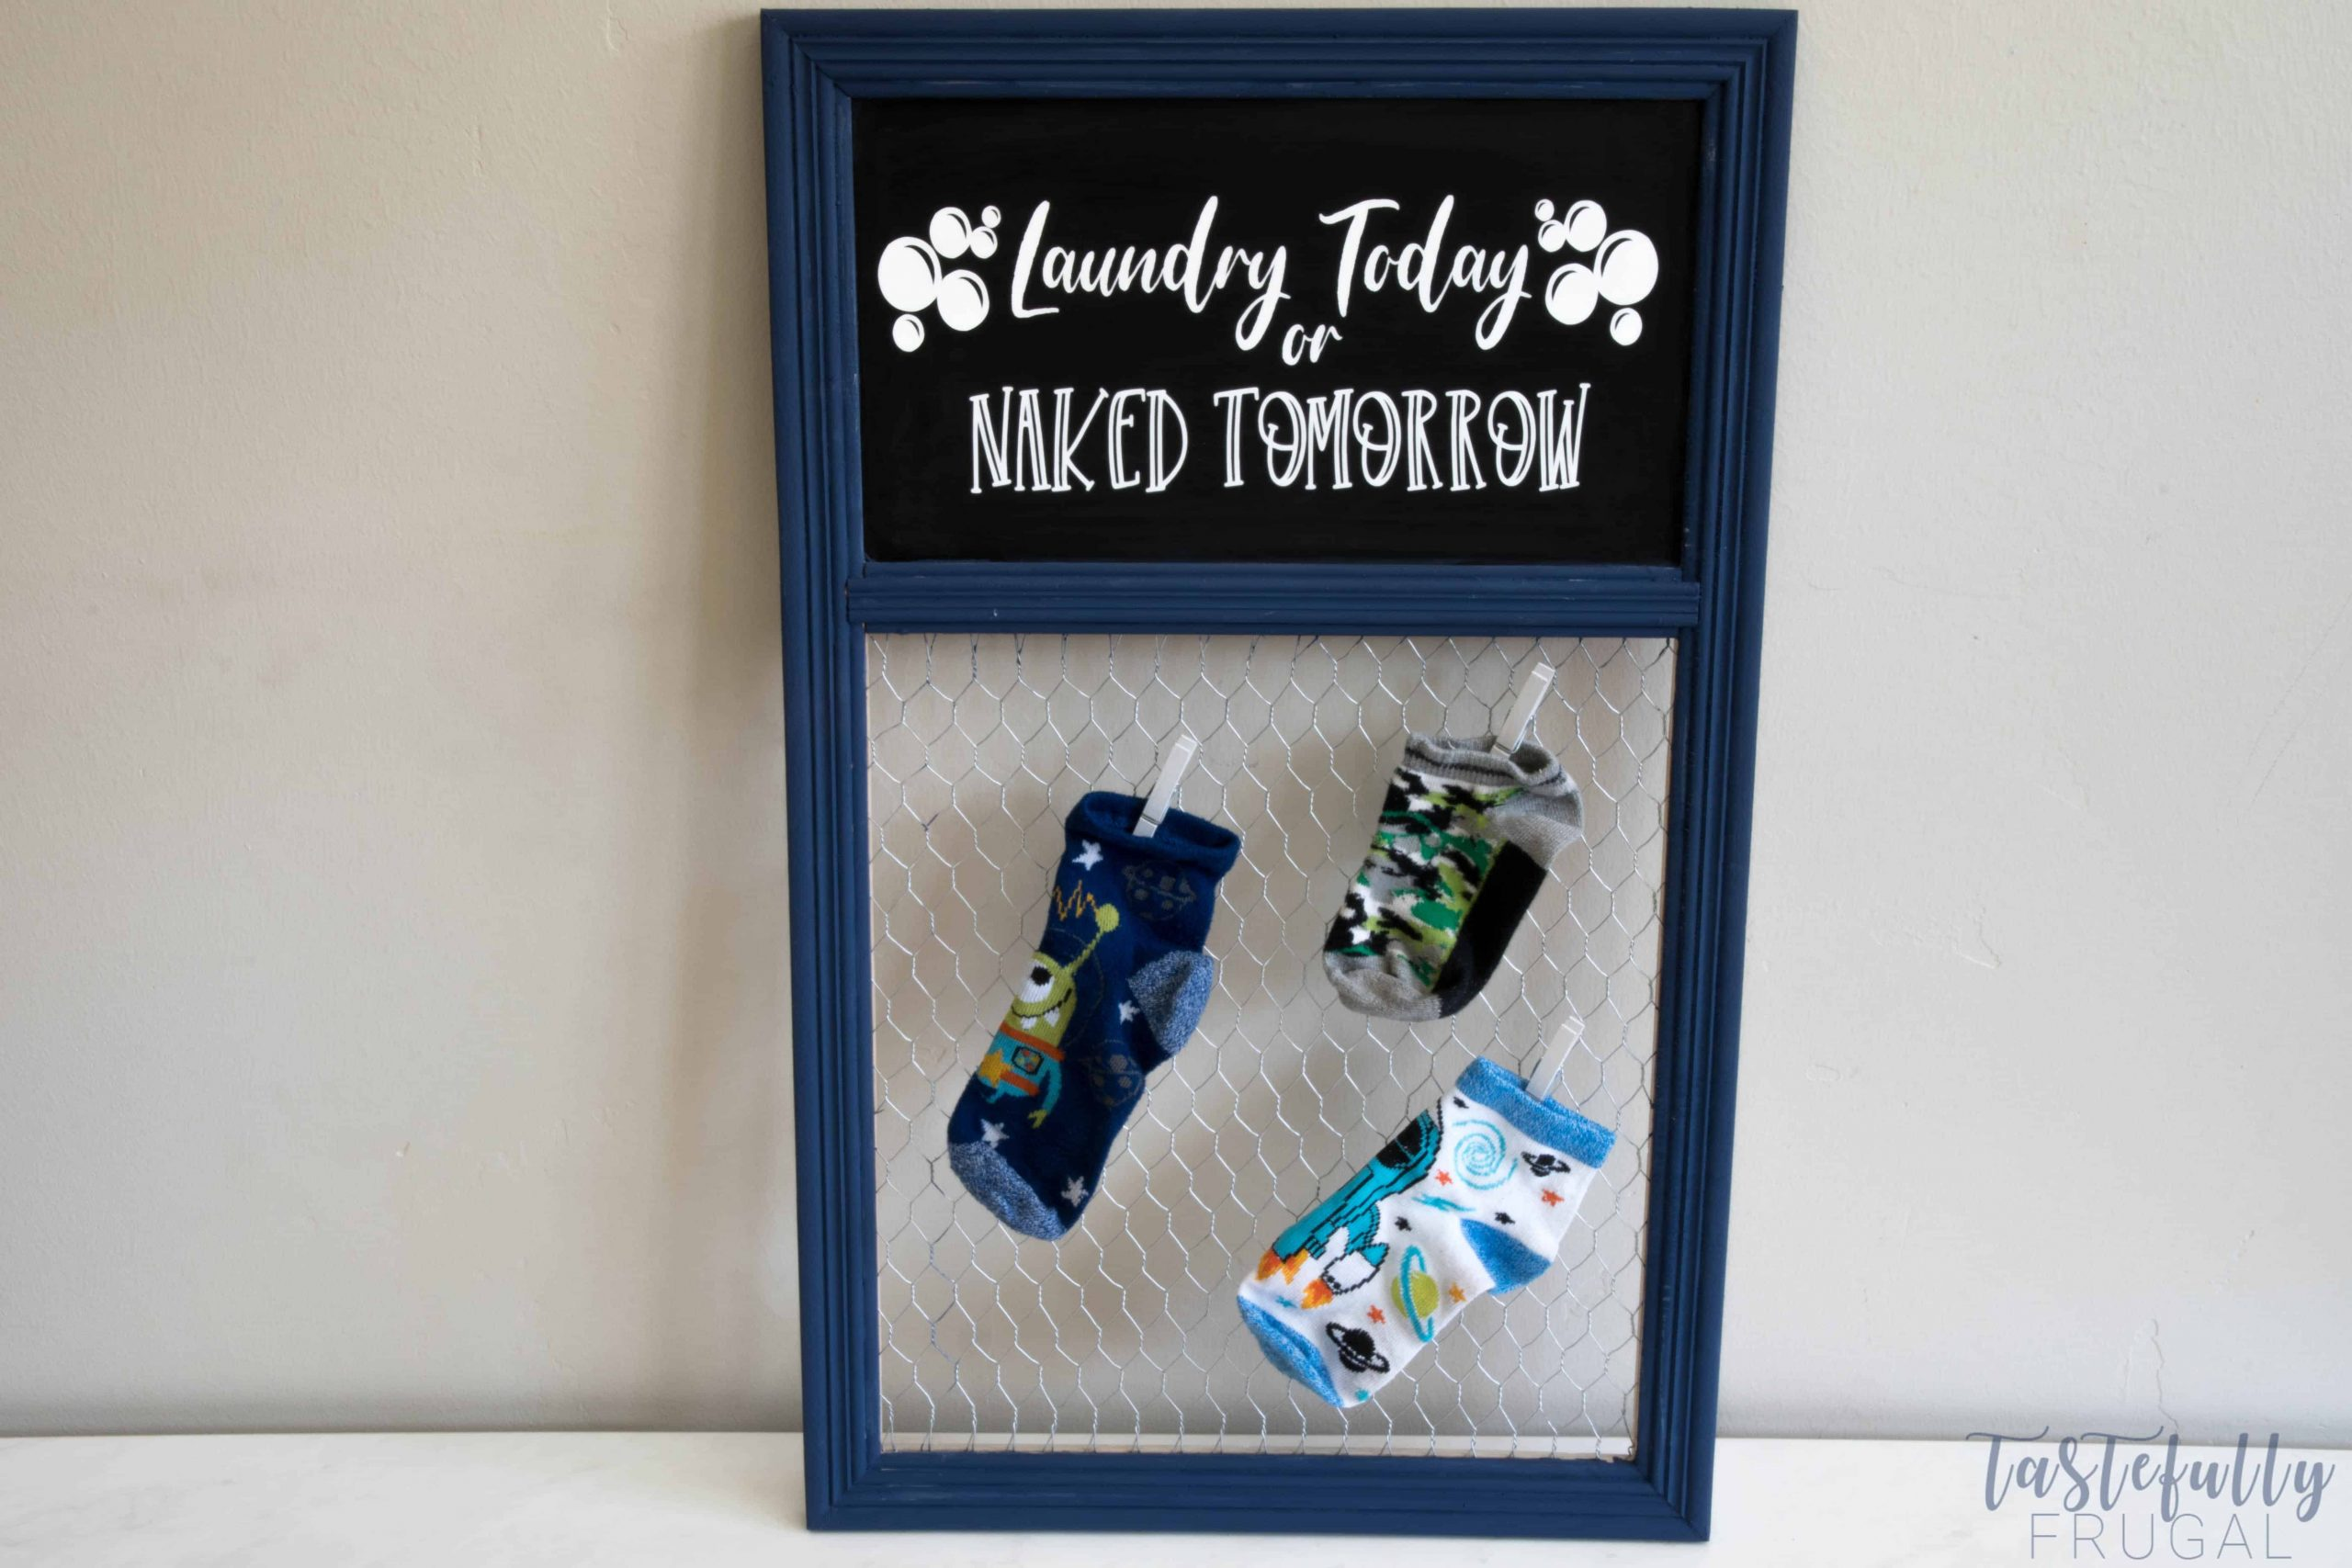 Lost Socks Decal Label  Laundry Room Decor  Lost Socks Label  for Container  Lost Socks Sticker  Laundry Room Organization Labels